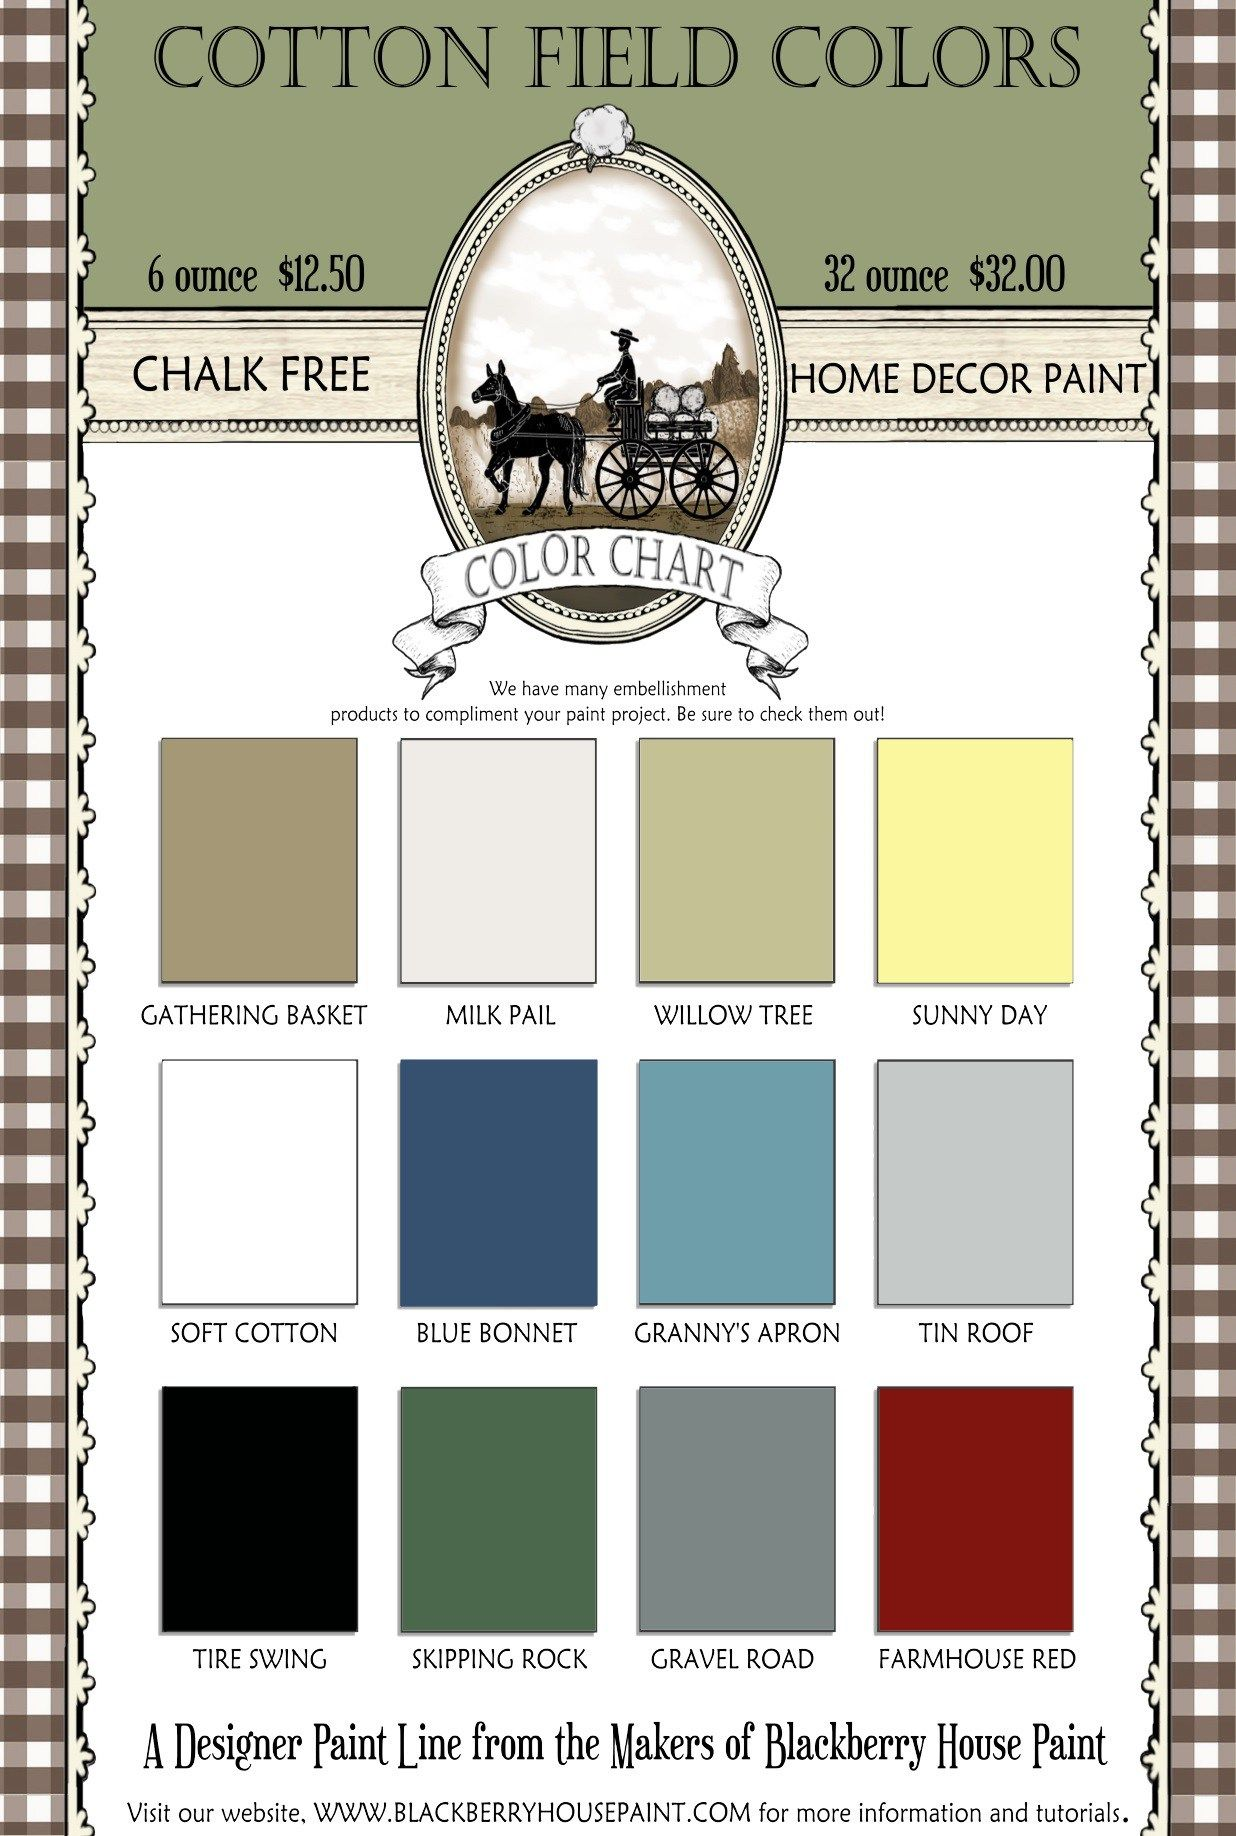 The Cotton Field Colors Line From Blackberry House Paint Blackberryhousepaint Cottonfieldcolors Furniturepaint Homedecorpaint Chalkfreepaint